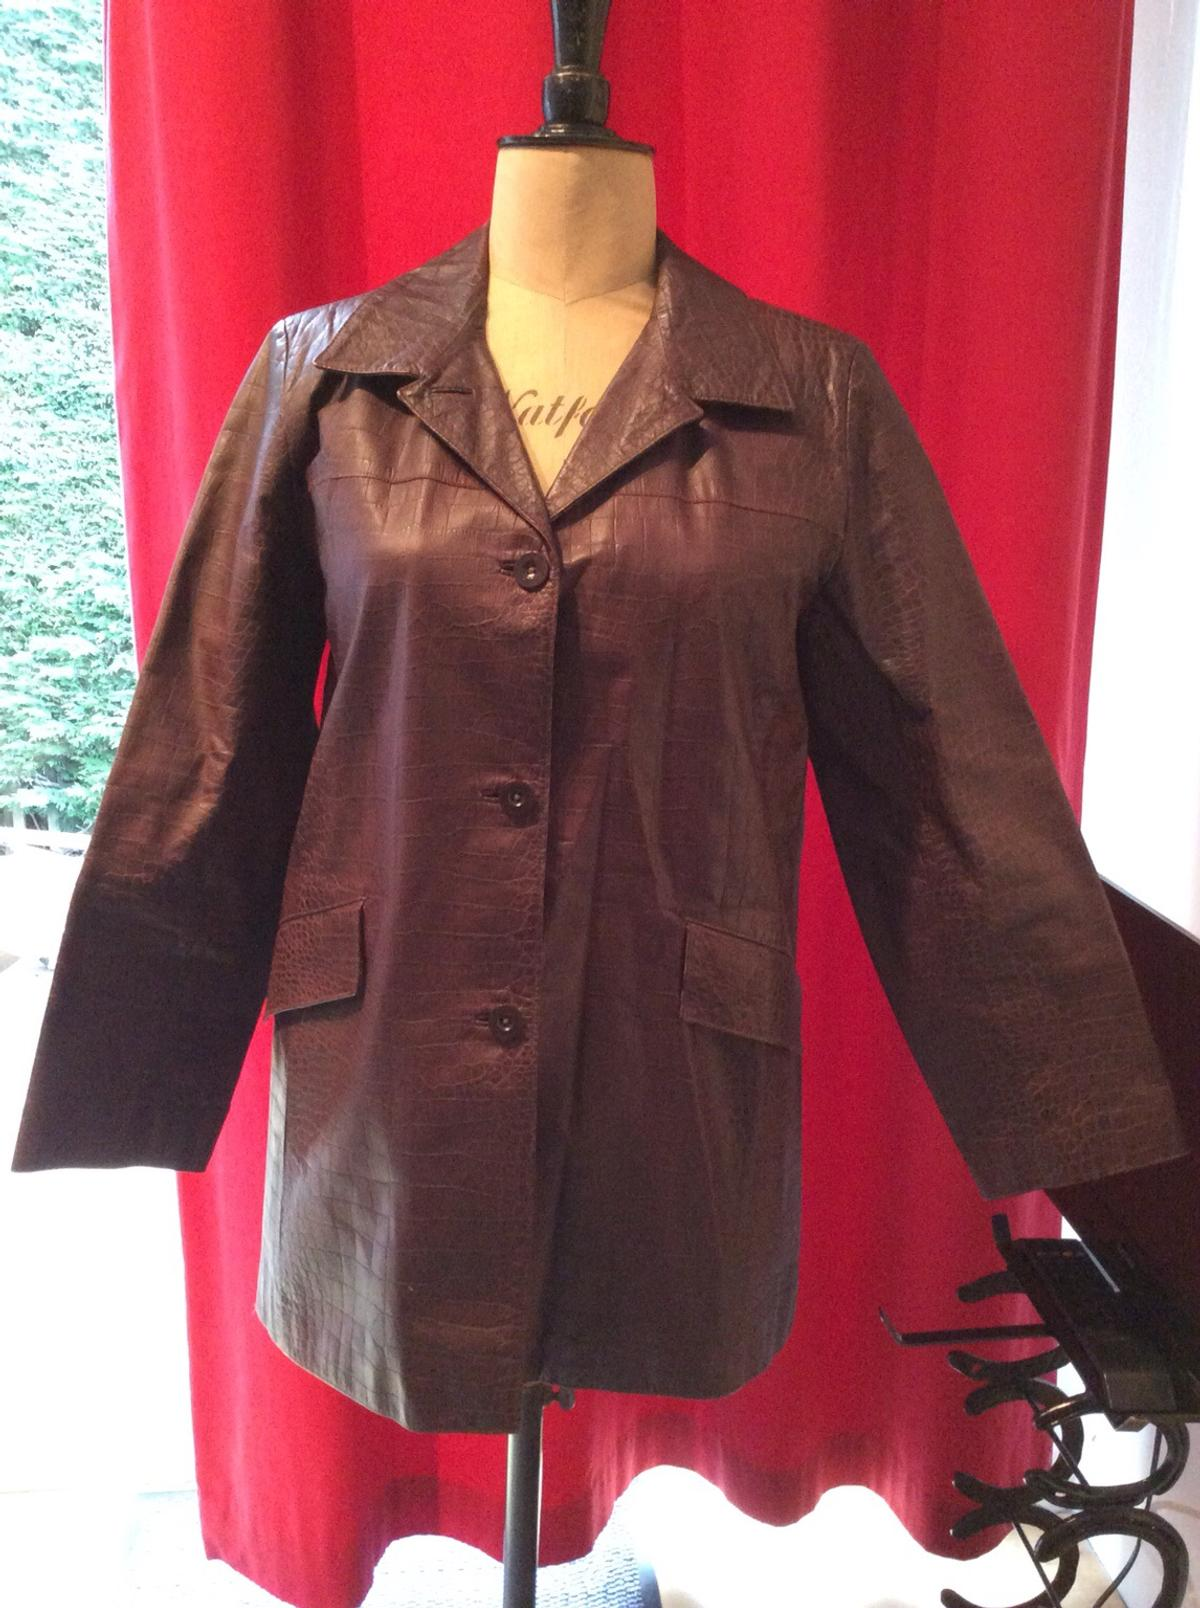 Ladies Austin Reed Leather Jacket In Maxwellheugh For 80 00 For Sale Shpock